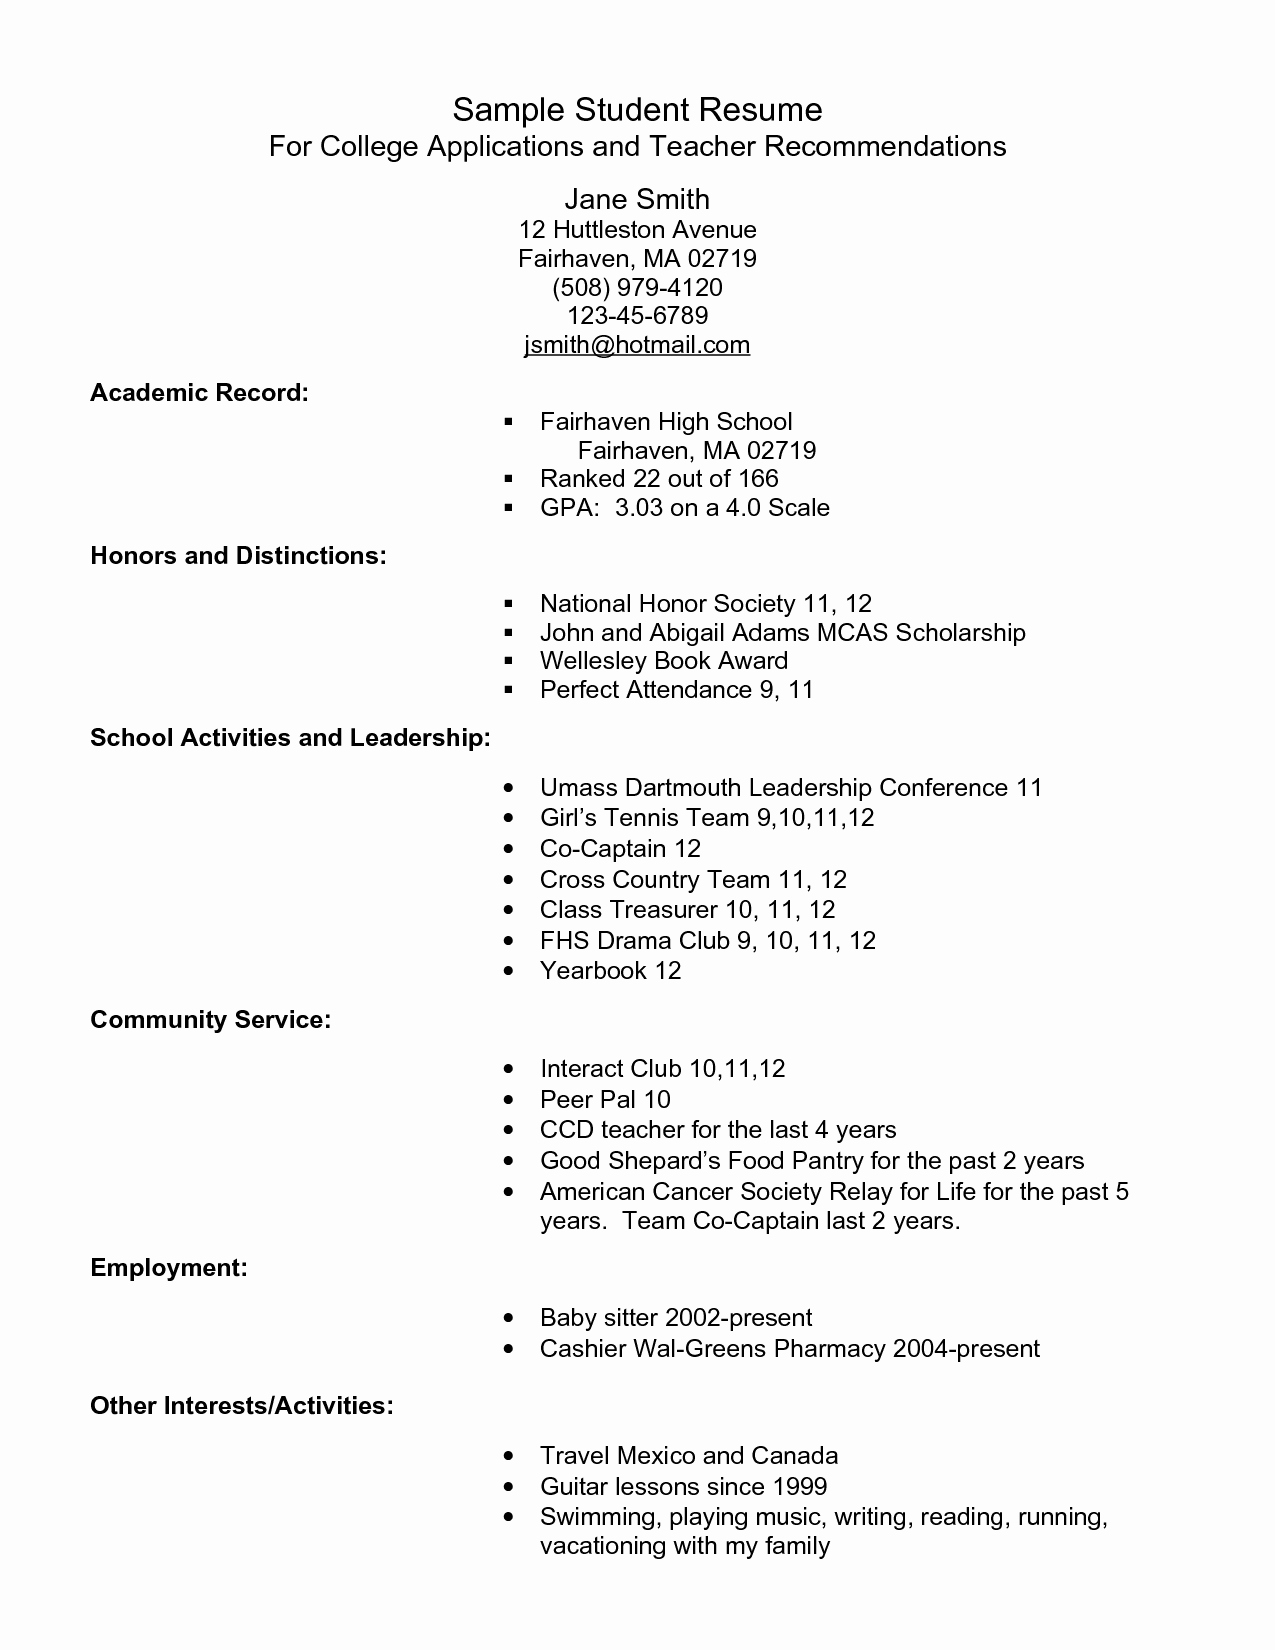 Example Resume for High School Students for College